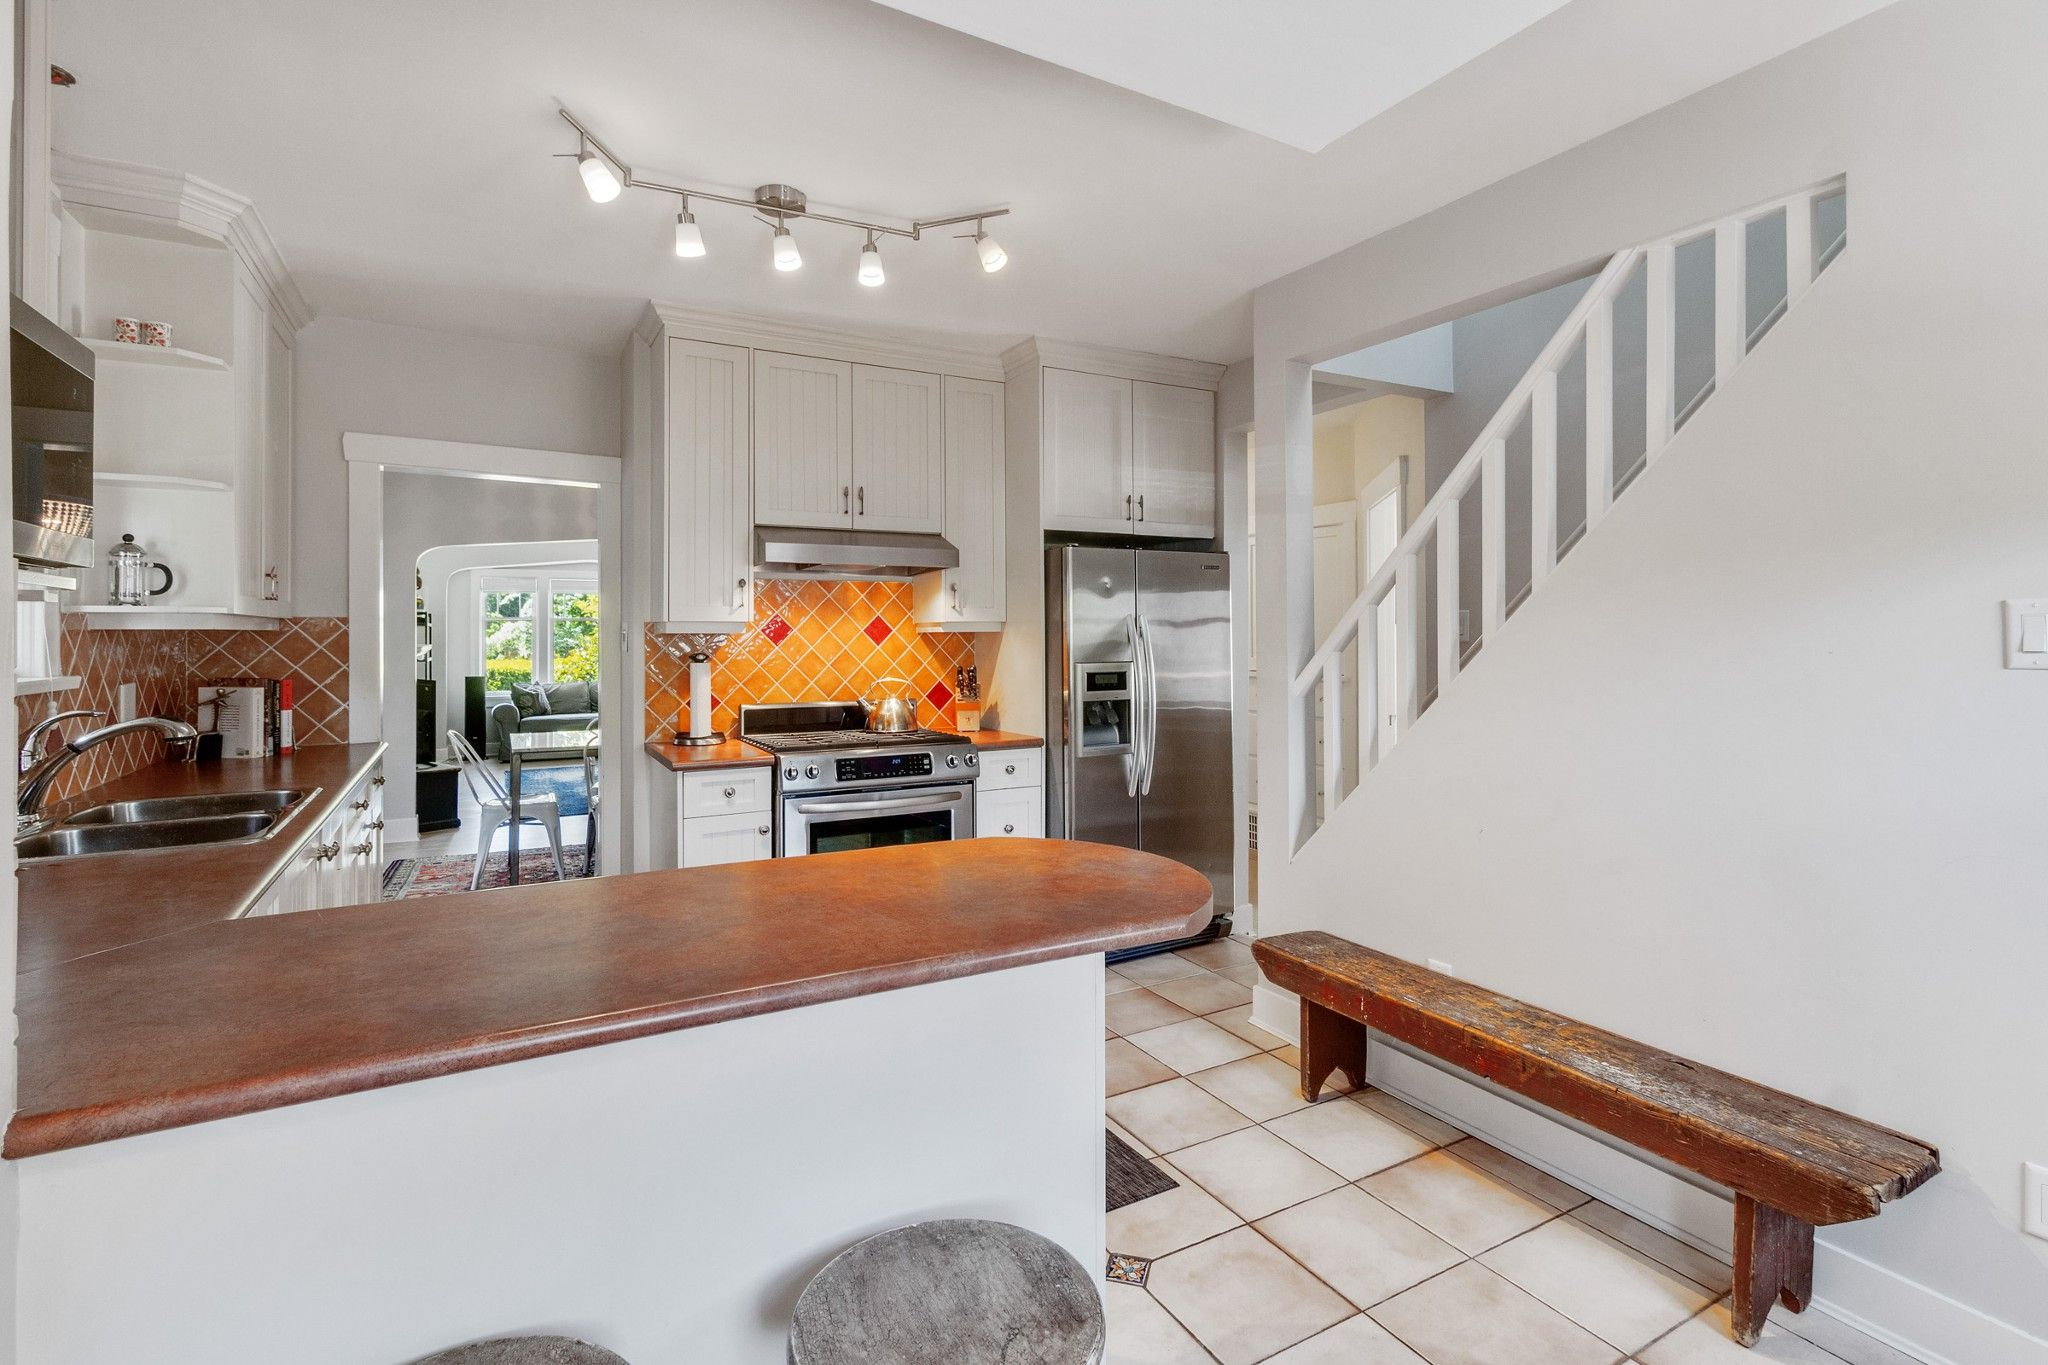 Photo 7: Photos: 3742 ONTARIO Street in Vancouver: Main House for sale (Vancouver East)  : MLS®# R2580004